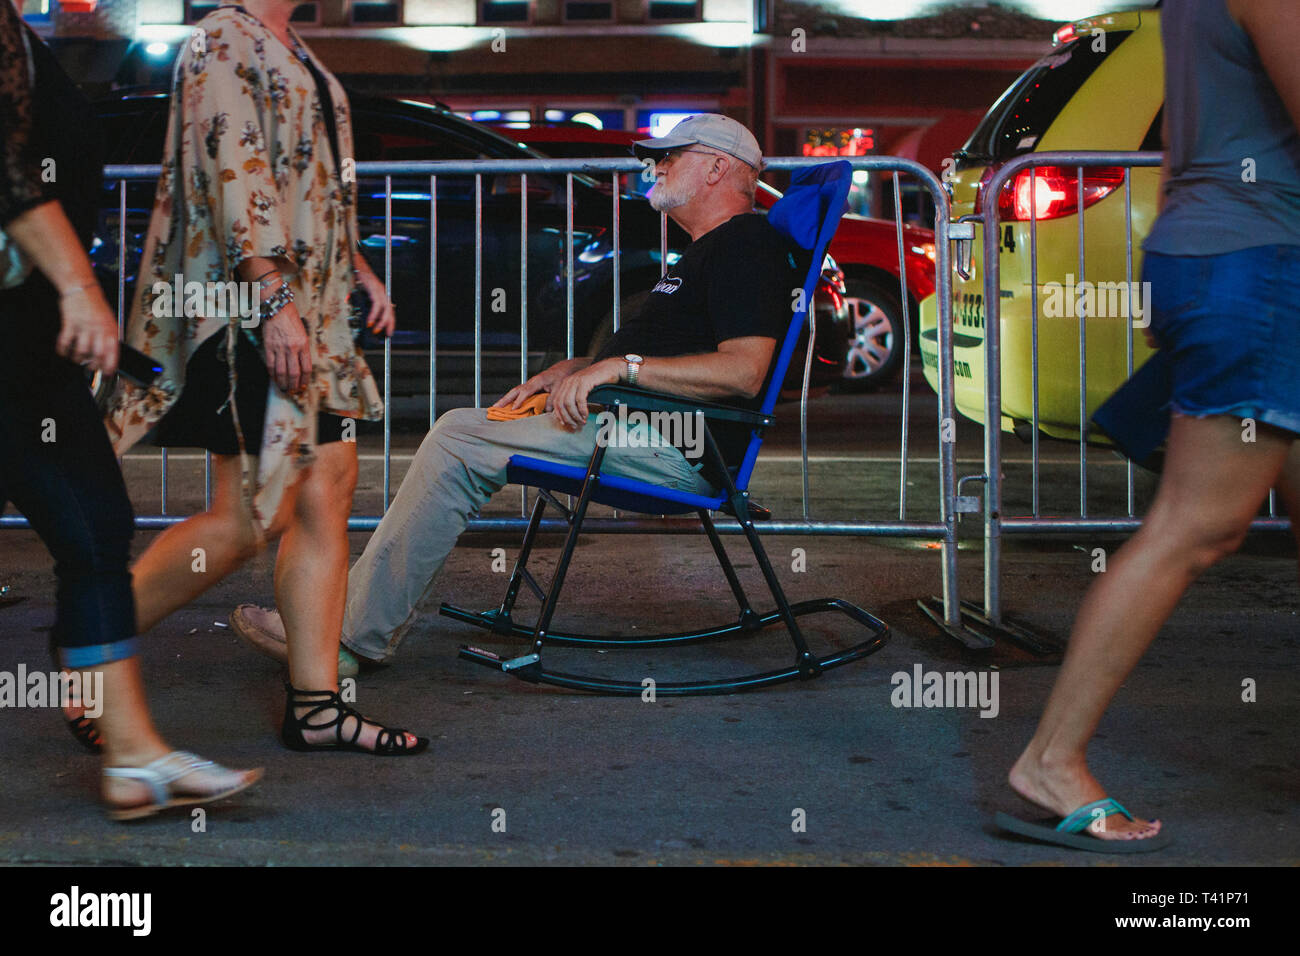 a man sits in a rocker in the middle of a crowded sidewalk at night Stock Photo